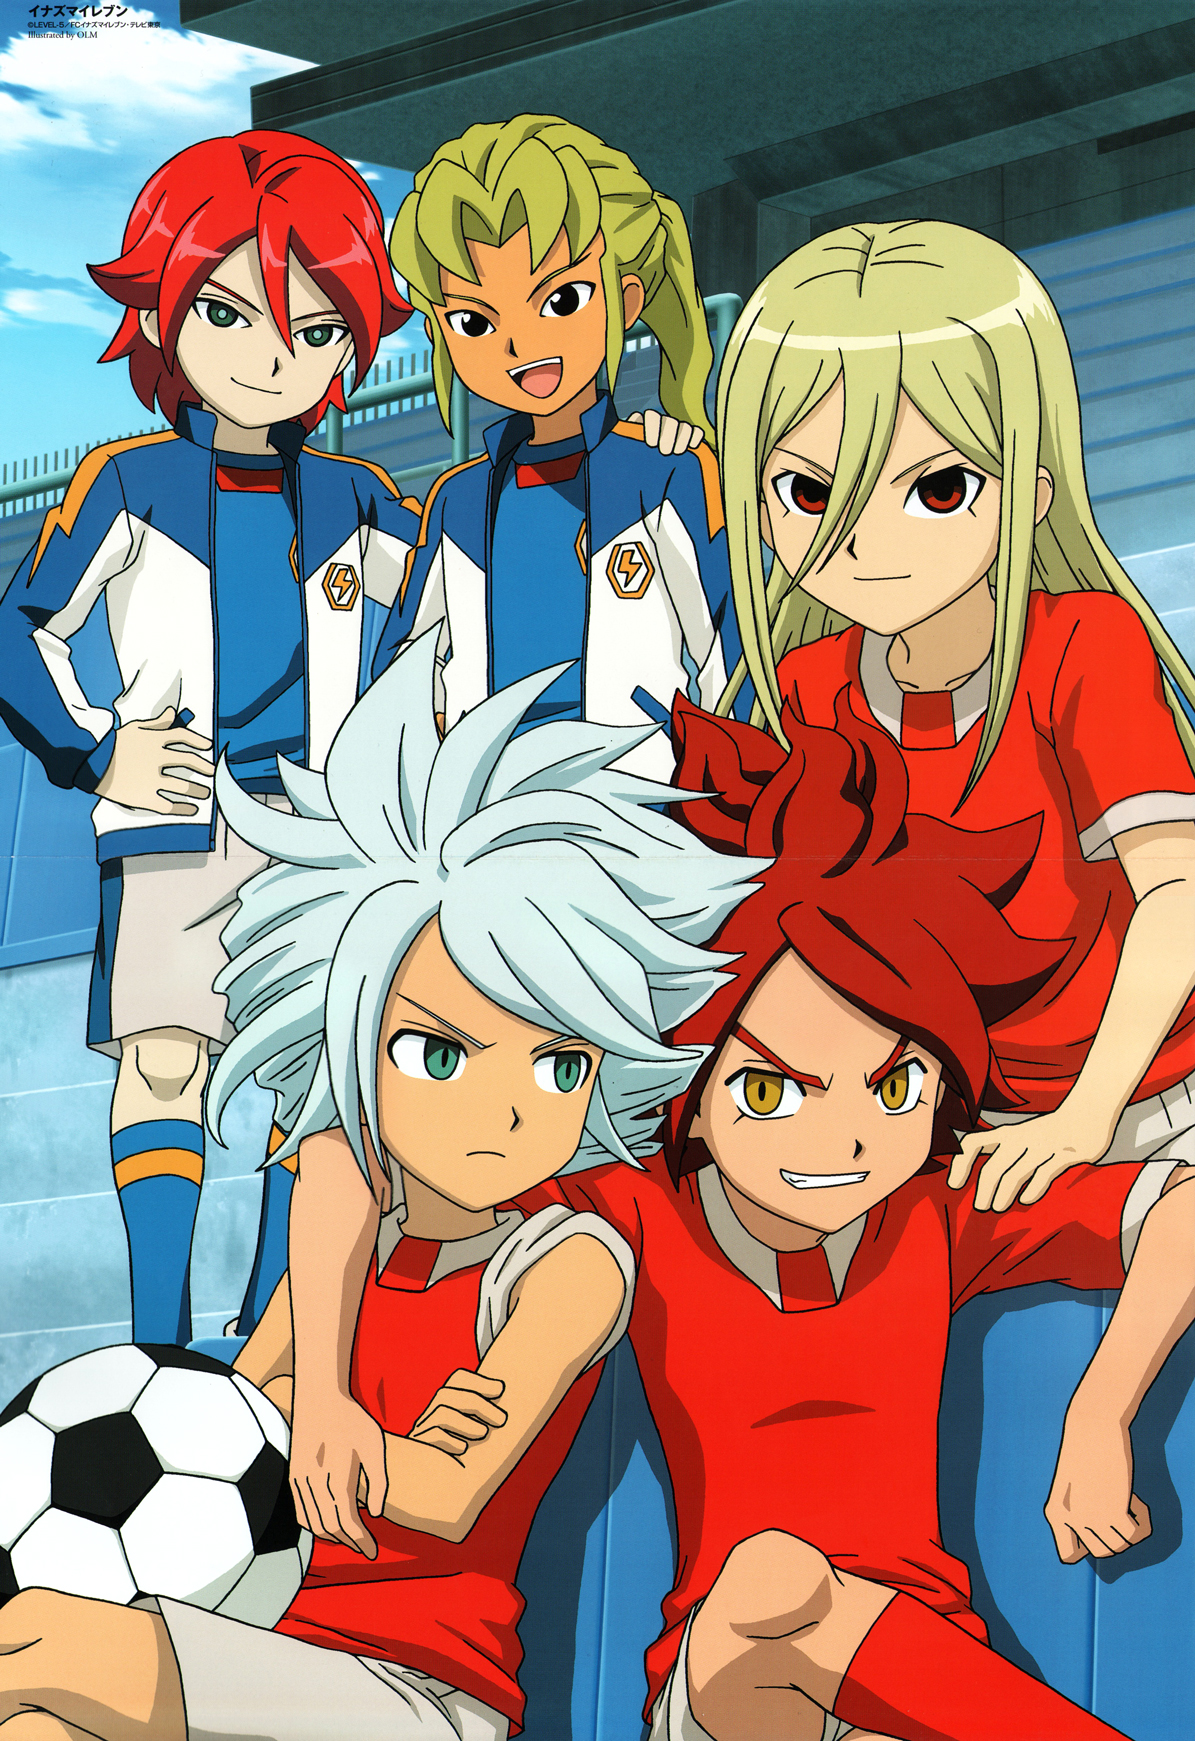 Kiyama Hiroto Xavier Foster Images Hiroto With His Friends Hd Fond D